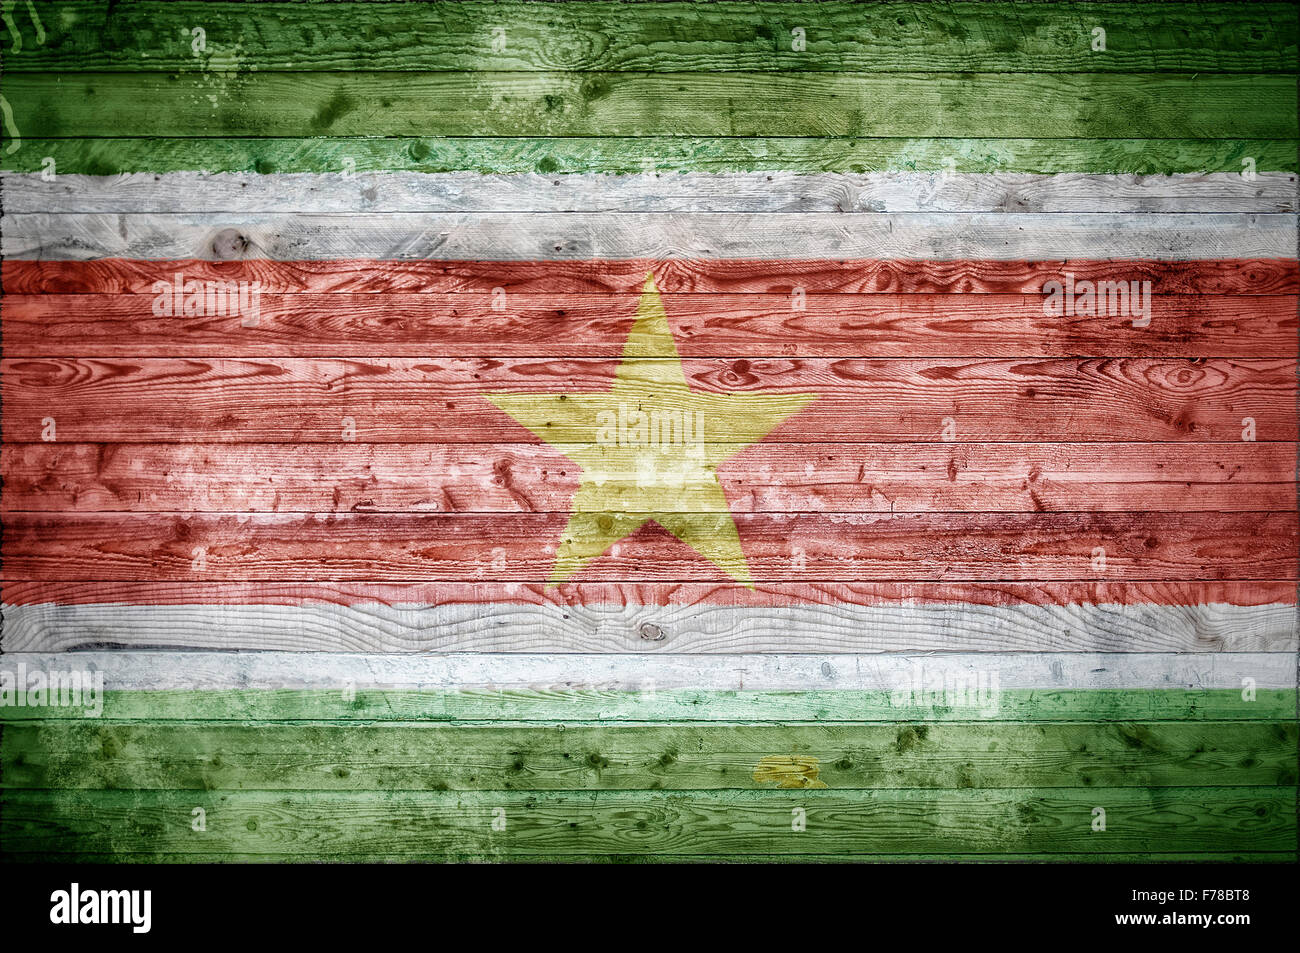 A vignetted background image of the flag of Suriname onto wooden boards of a wall or floor. - Stock Image